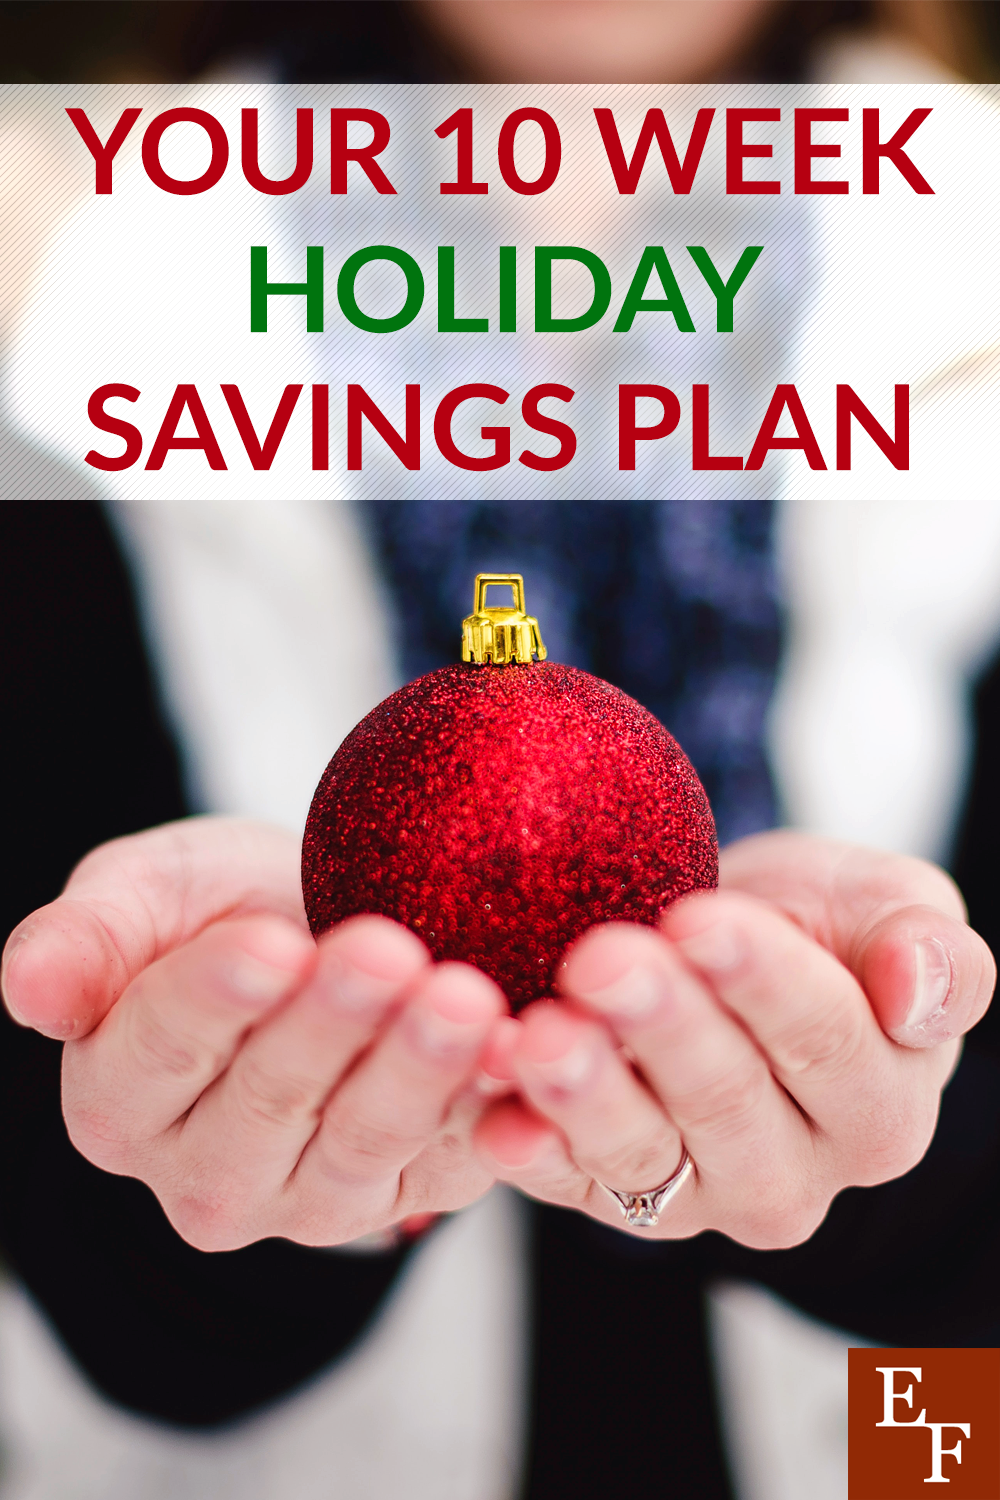 The holidays are fast approaching, are you ready? One good way to get prepared is by starting a 10-week holiday savings plan!